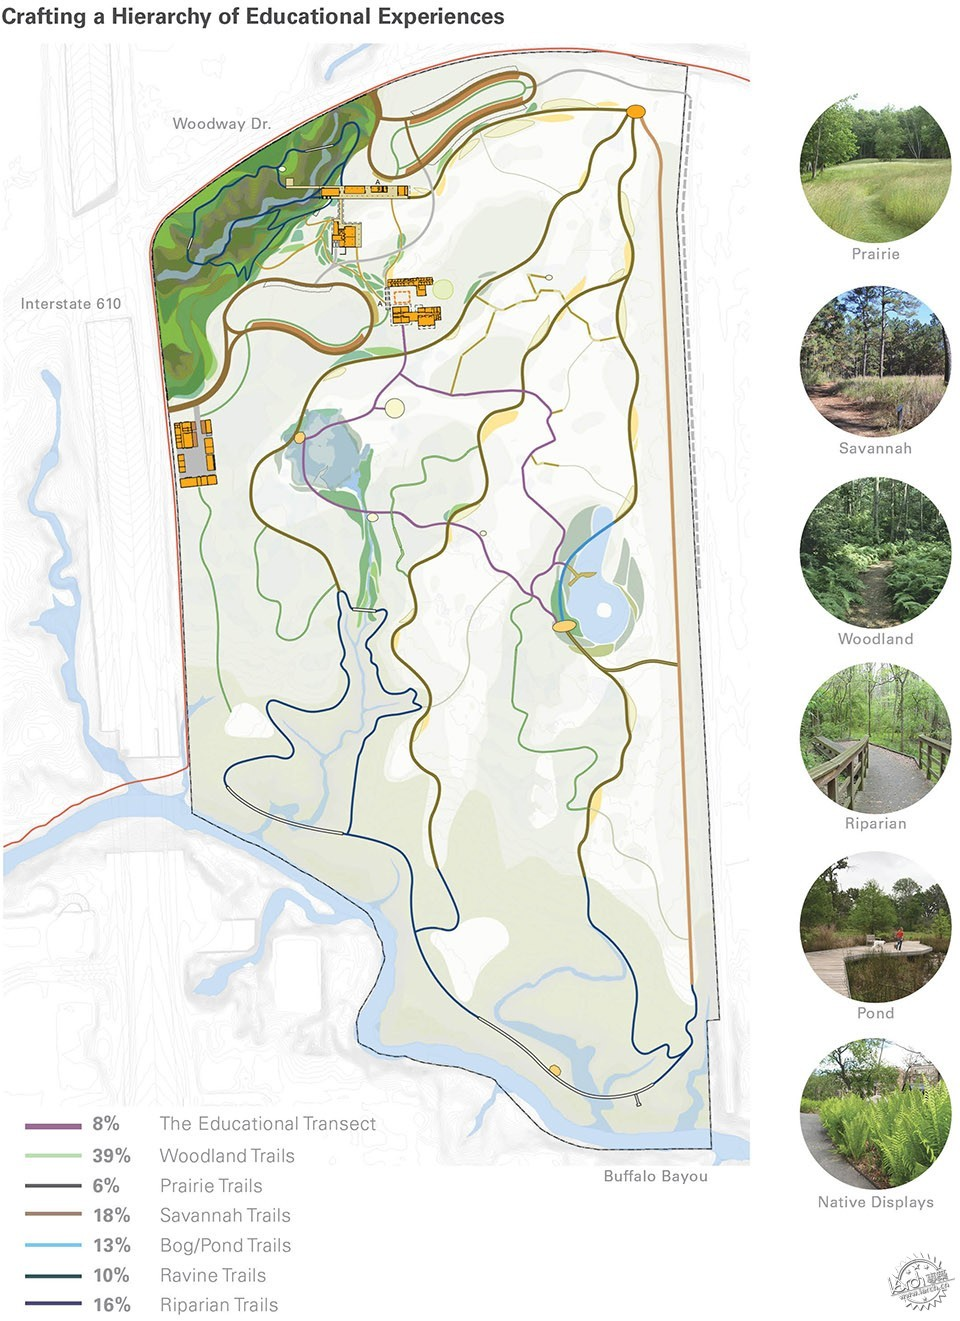 Devastation to Resilience: The Houston Arboretum & Nature Center第12张图片